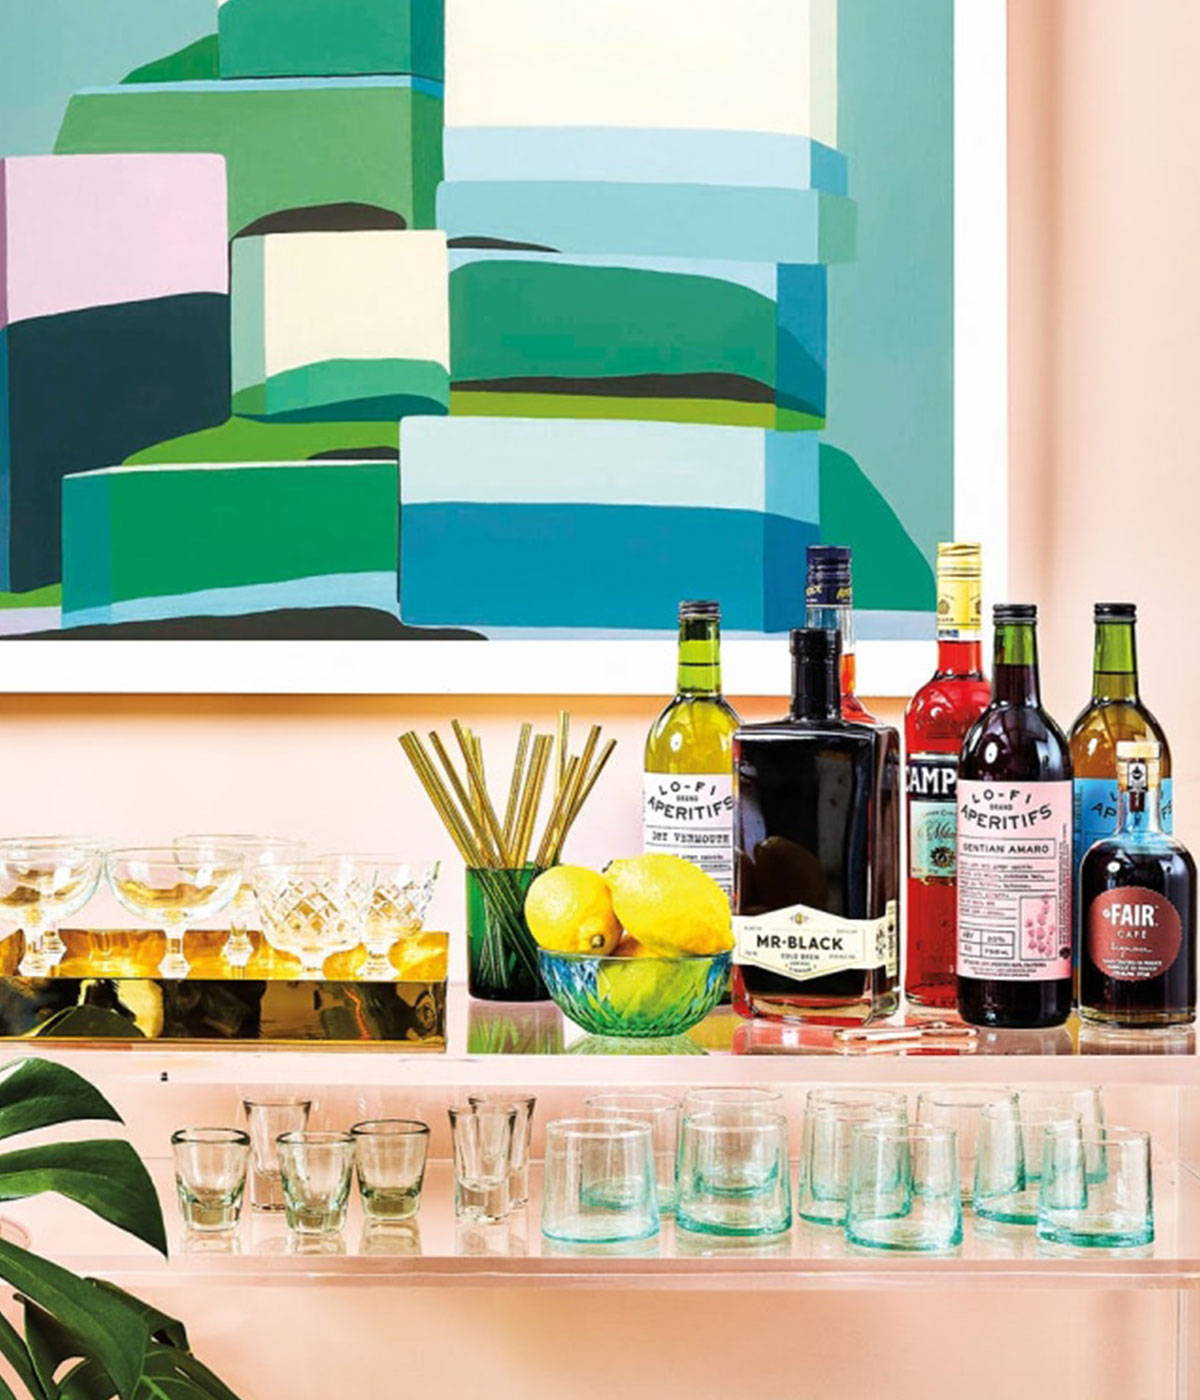 A colorful set of bottles and glasses on a barcart in front of art painting.